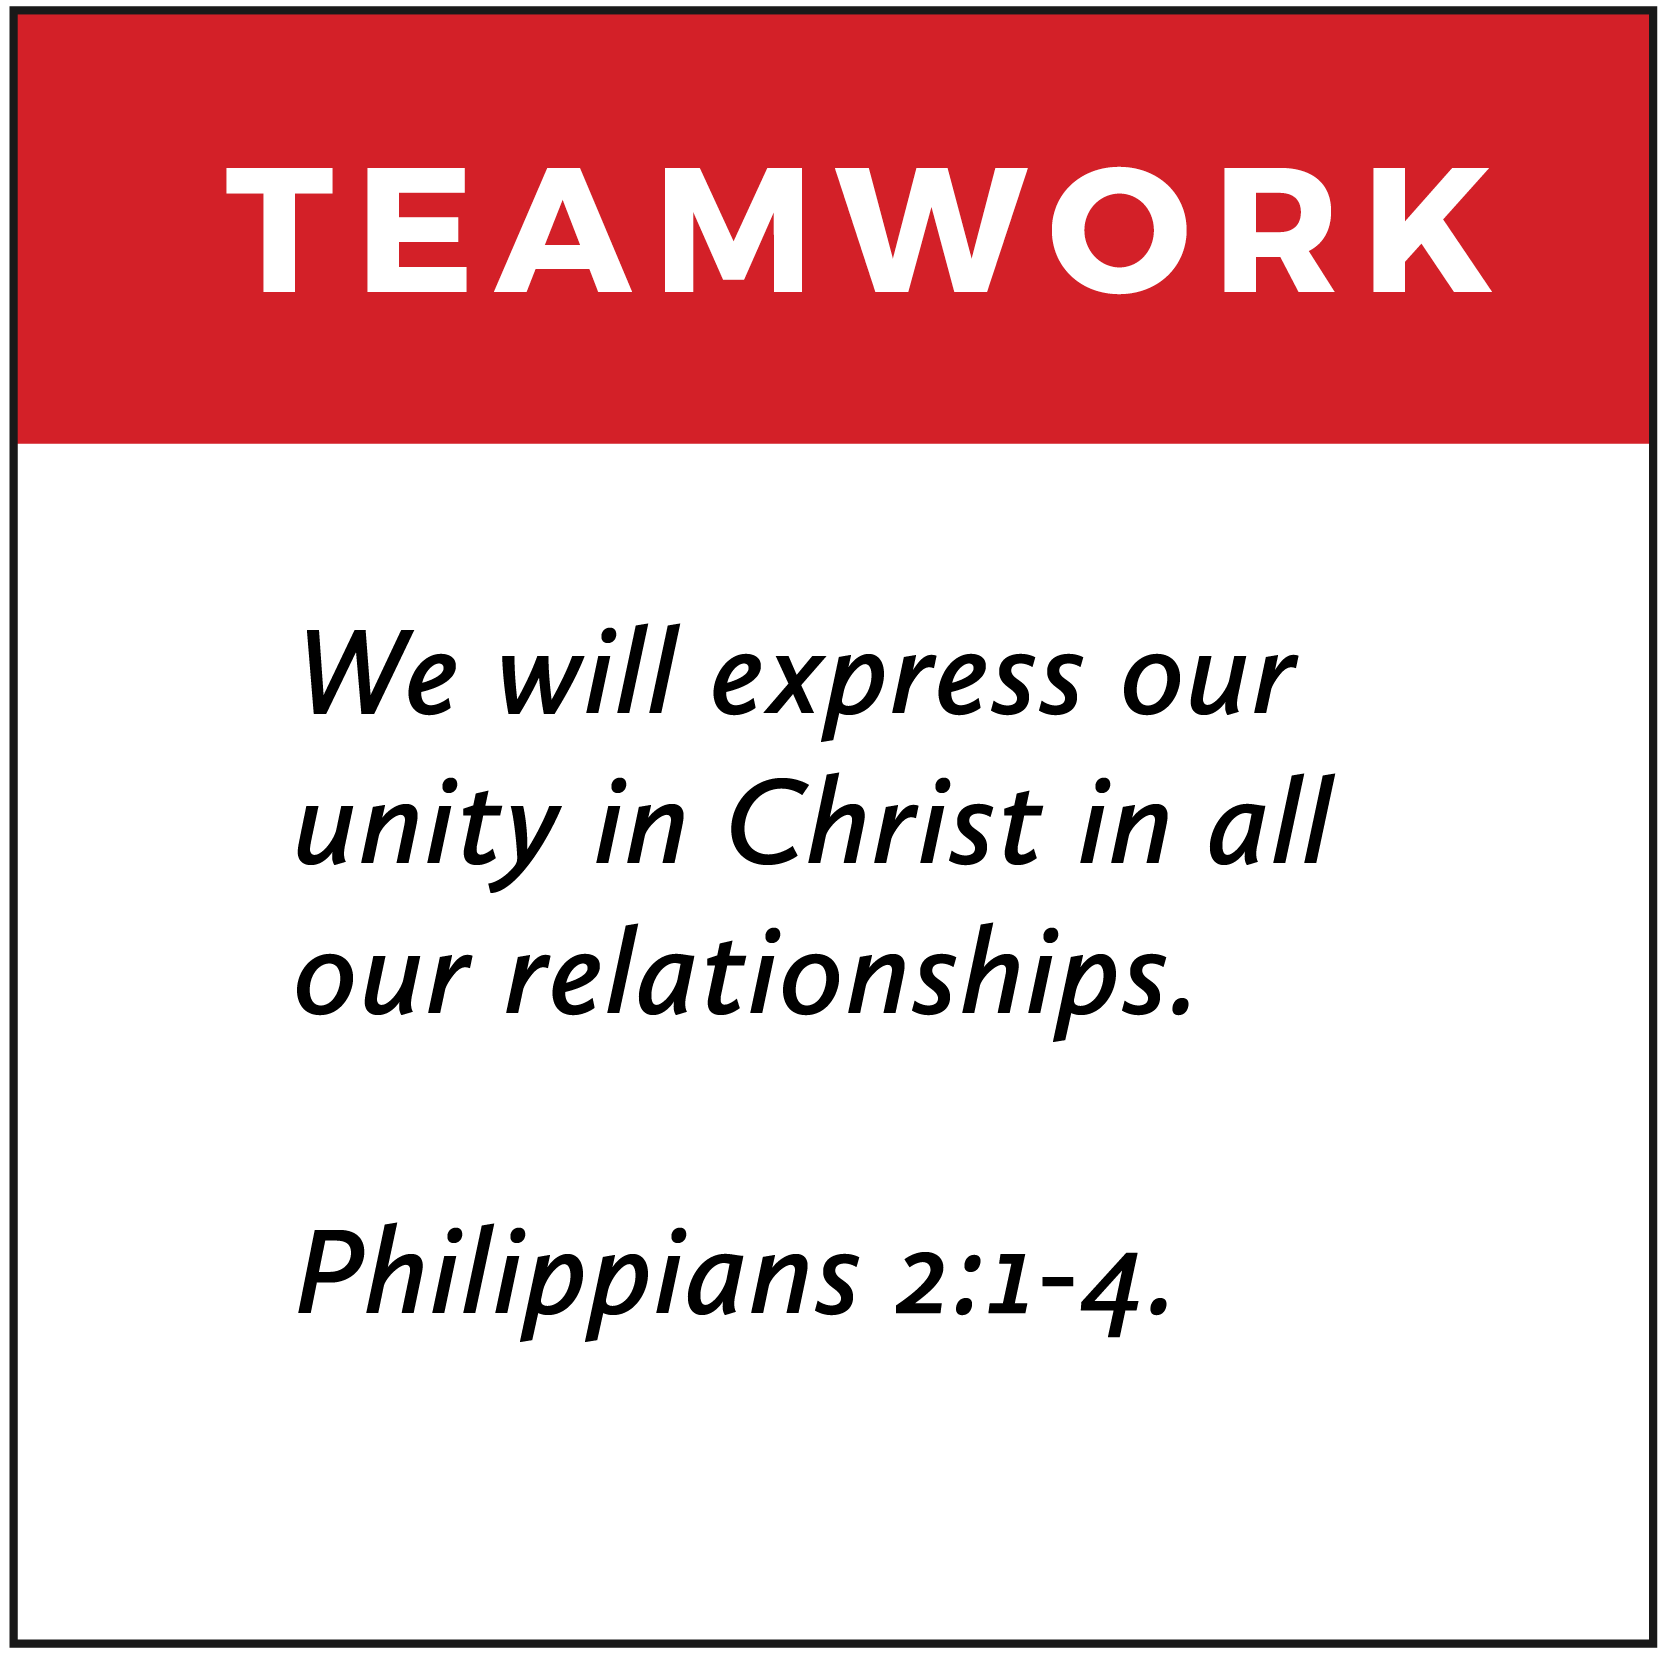 Teamwork | FCA Values